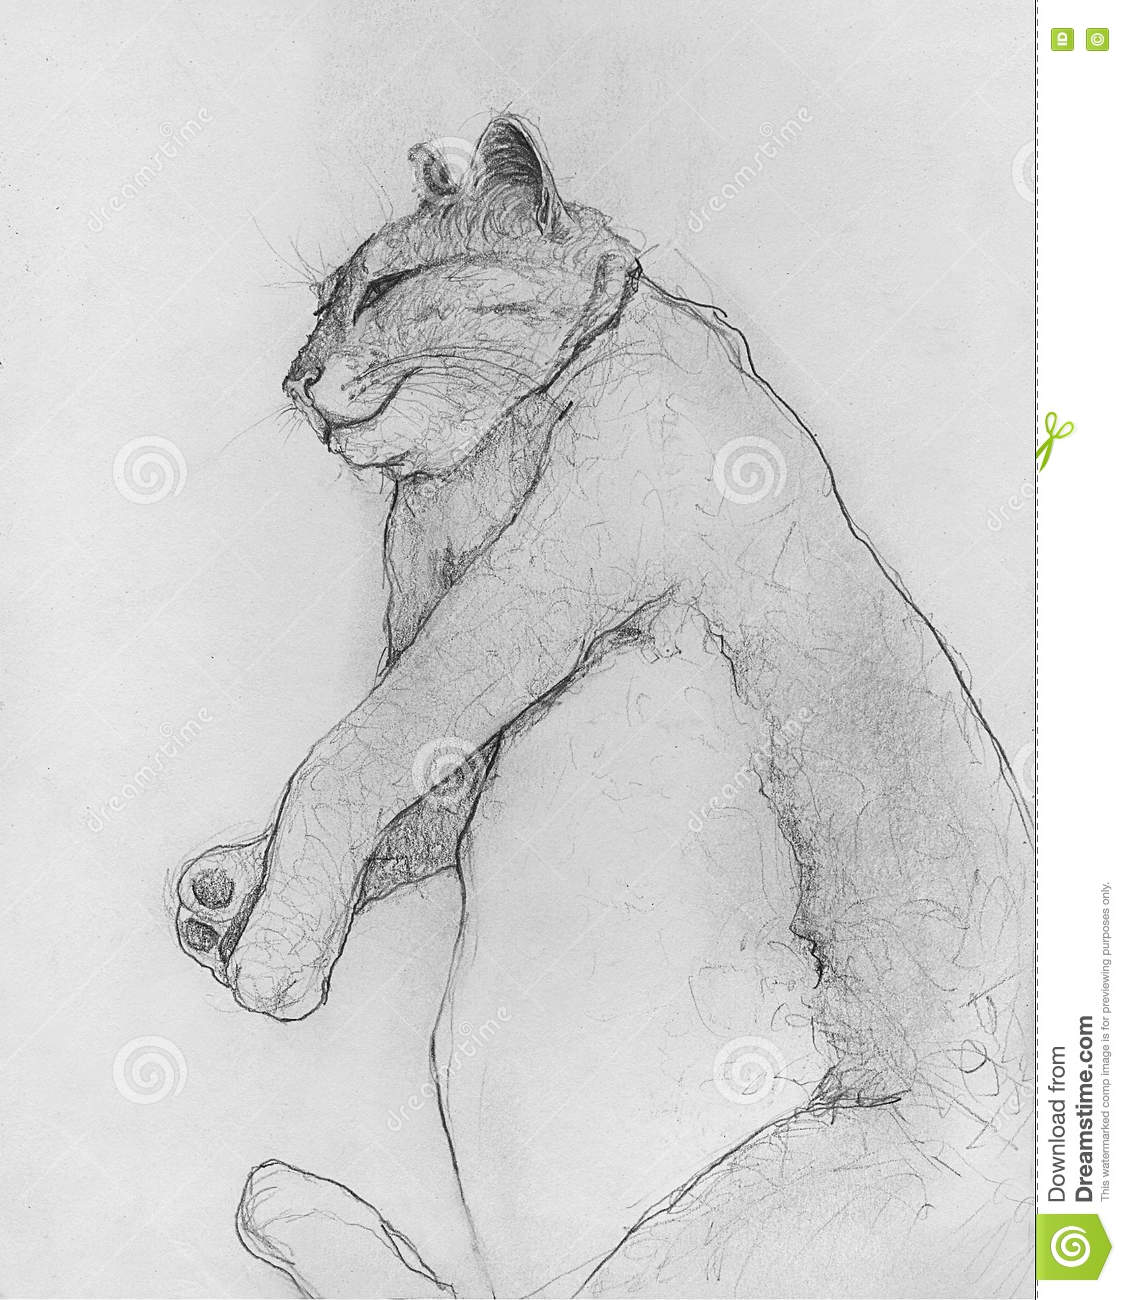 This is an original hand drawn pencil sketch of a large cat rolled over on his side squinting in a sleepy daze